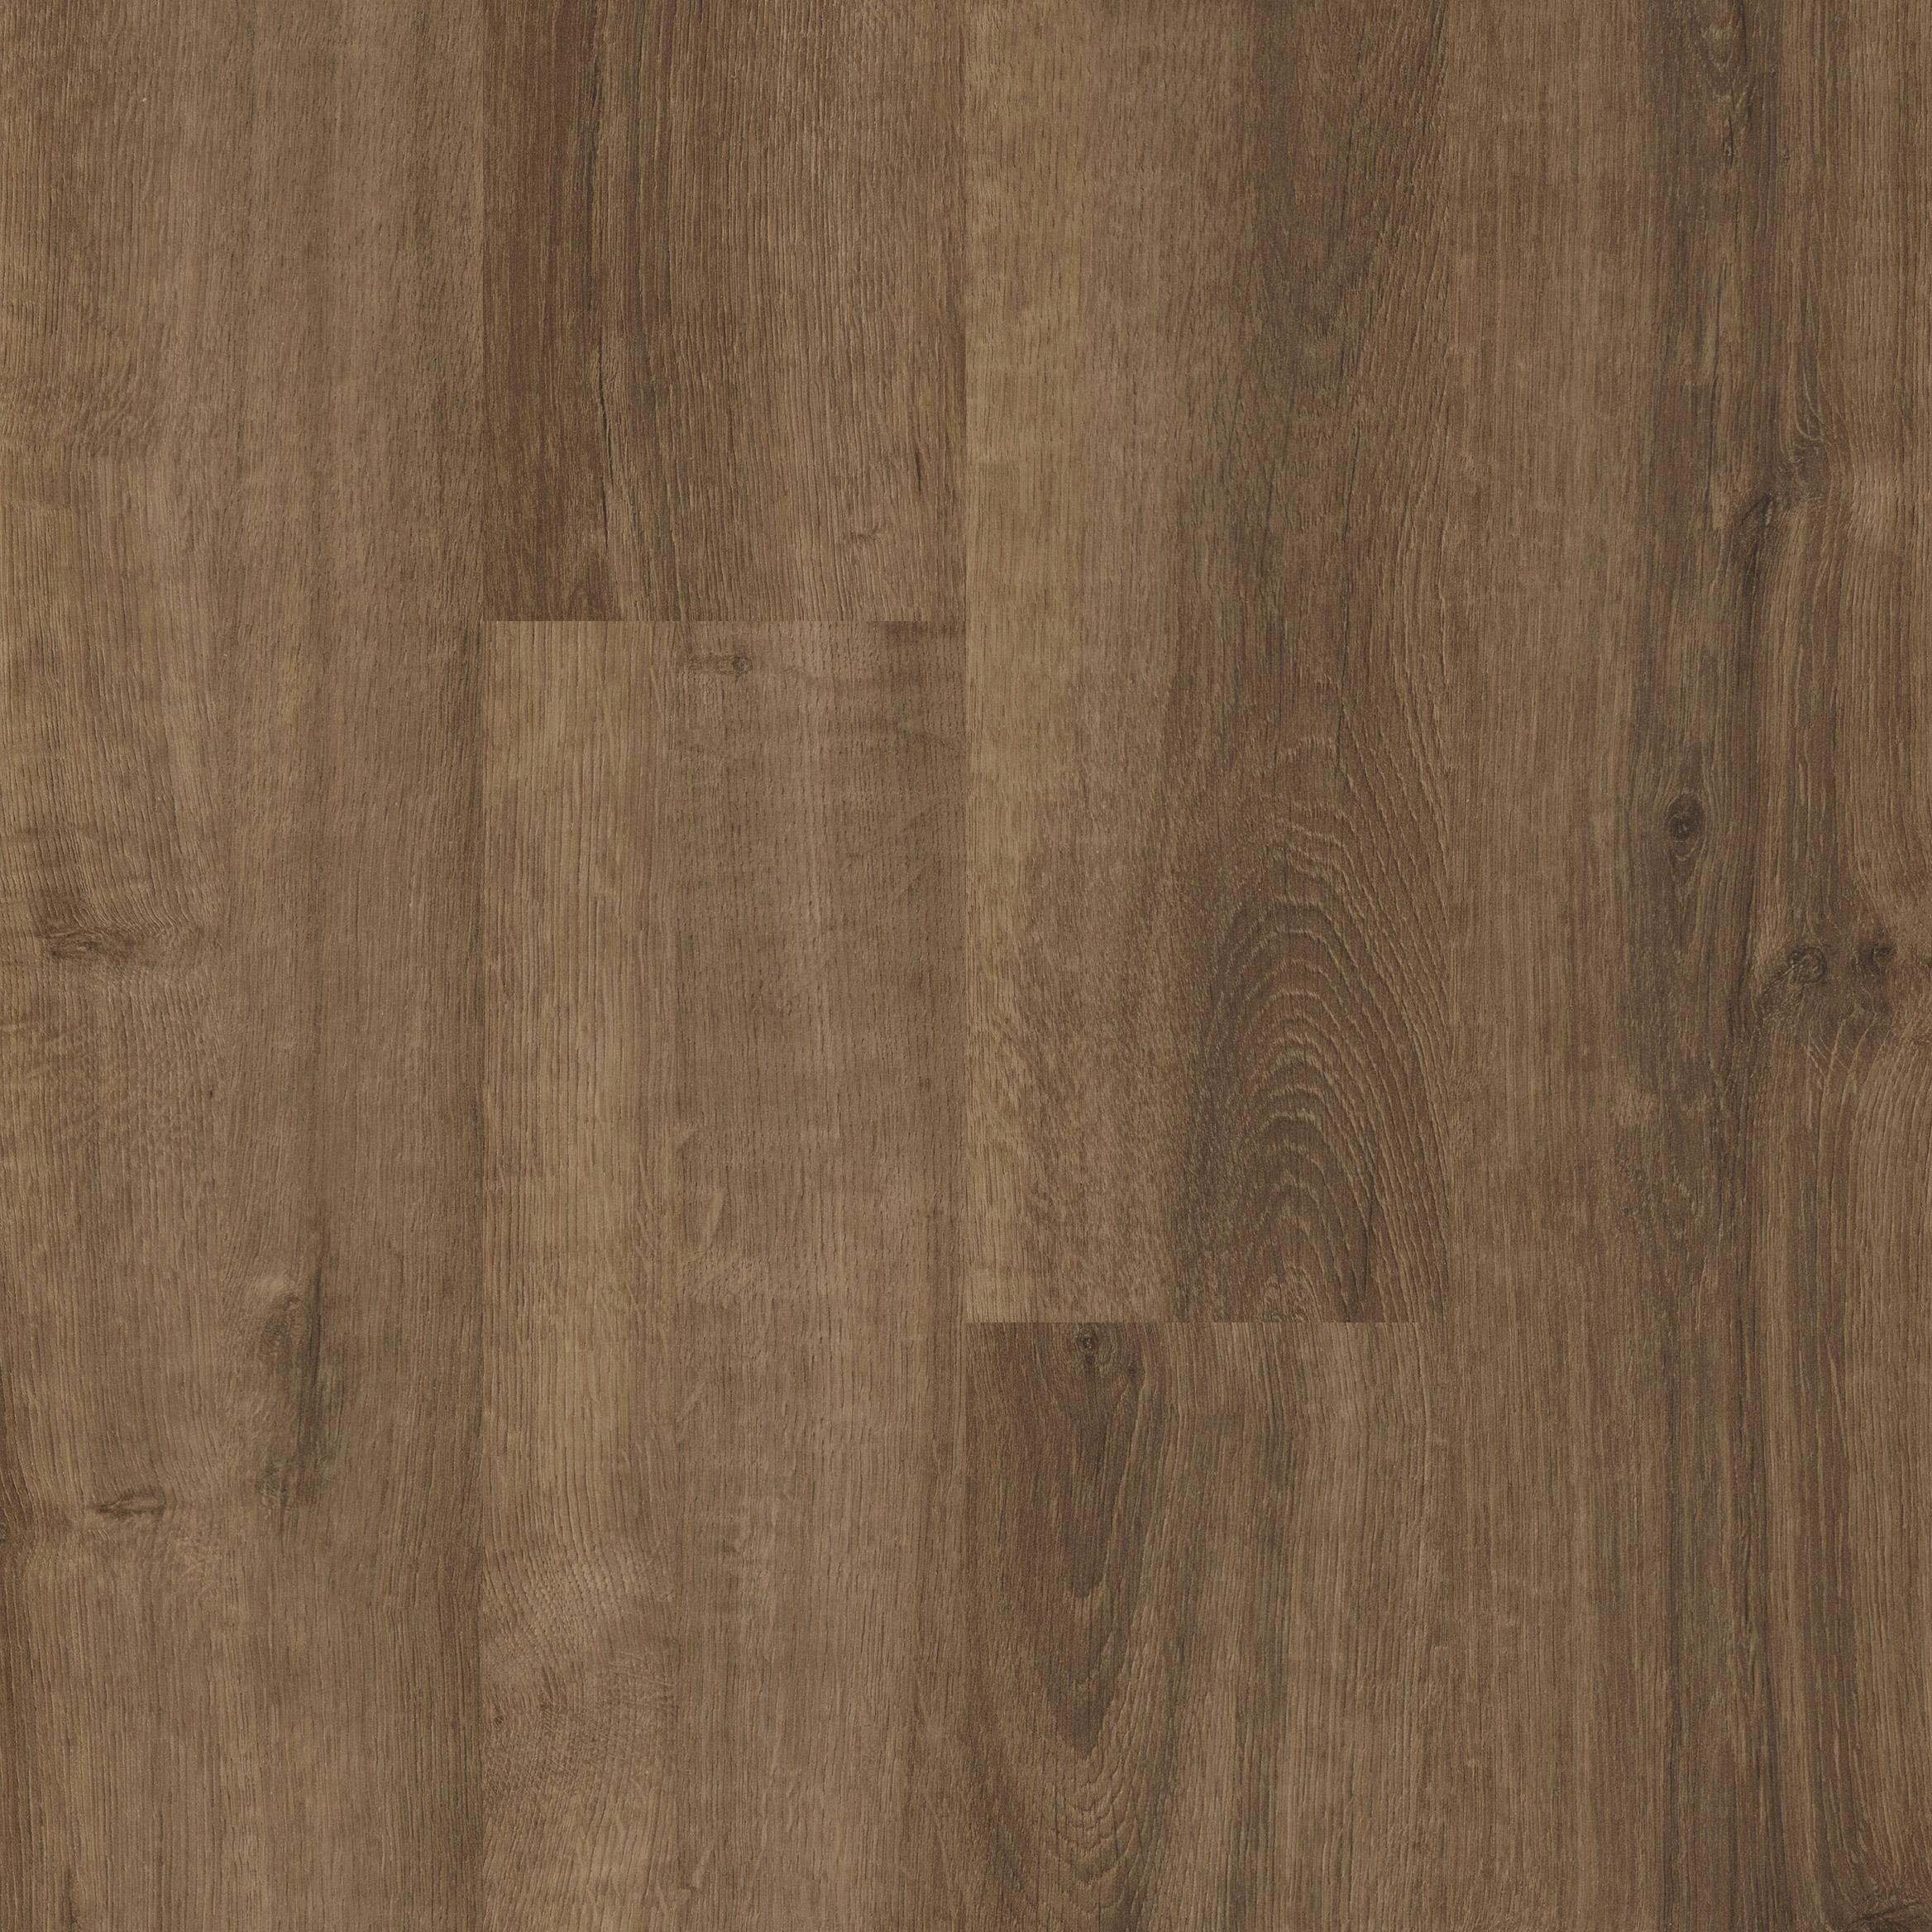 Ivc Moduleo Horizon Distressed Stagecoach Hickory 6 Waterproof Click Together Lvt Vinyl Plank Flooring Vinyl Plank Flooring Flooring Plank Flooring